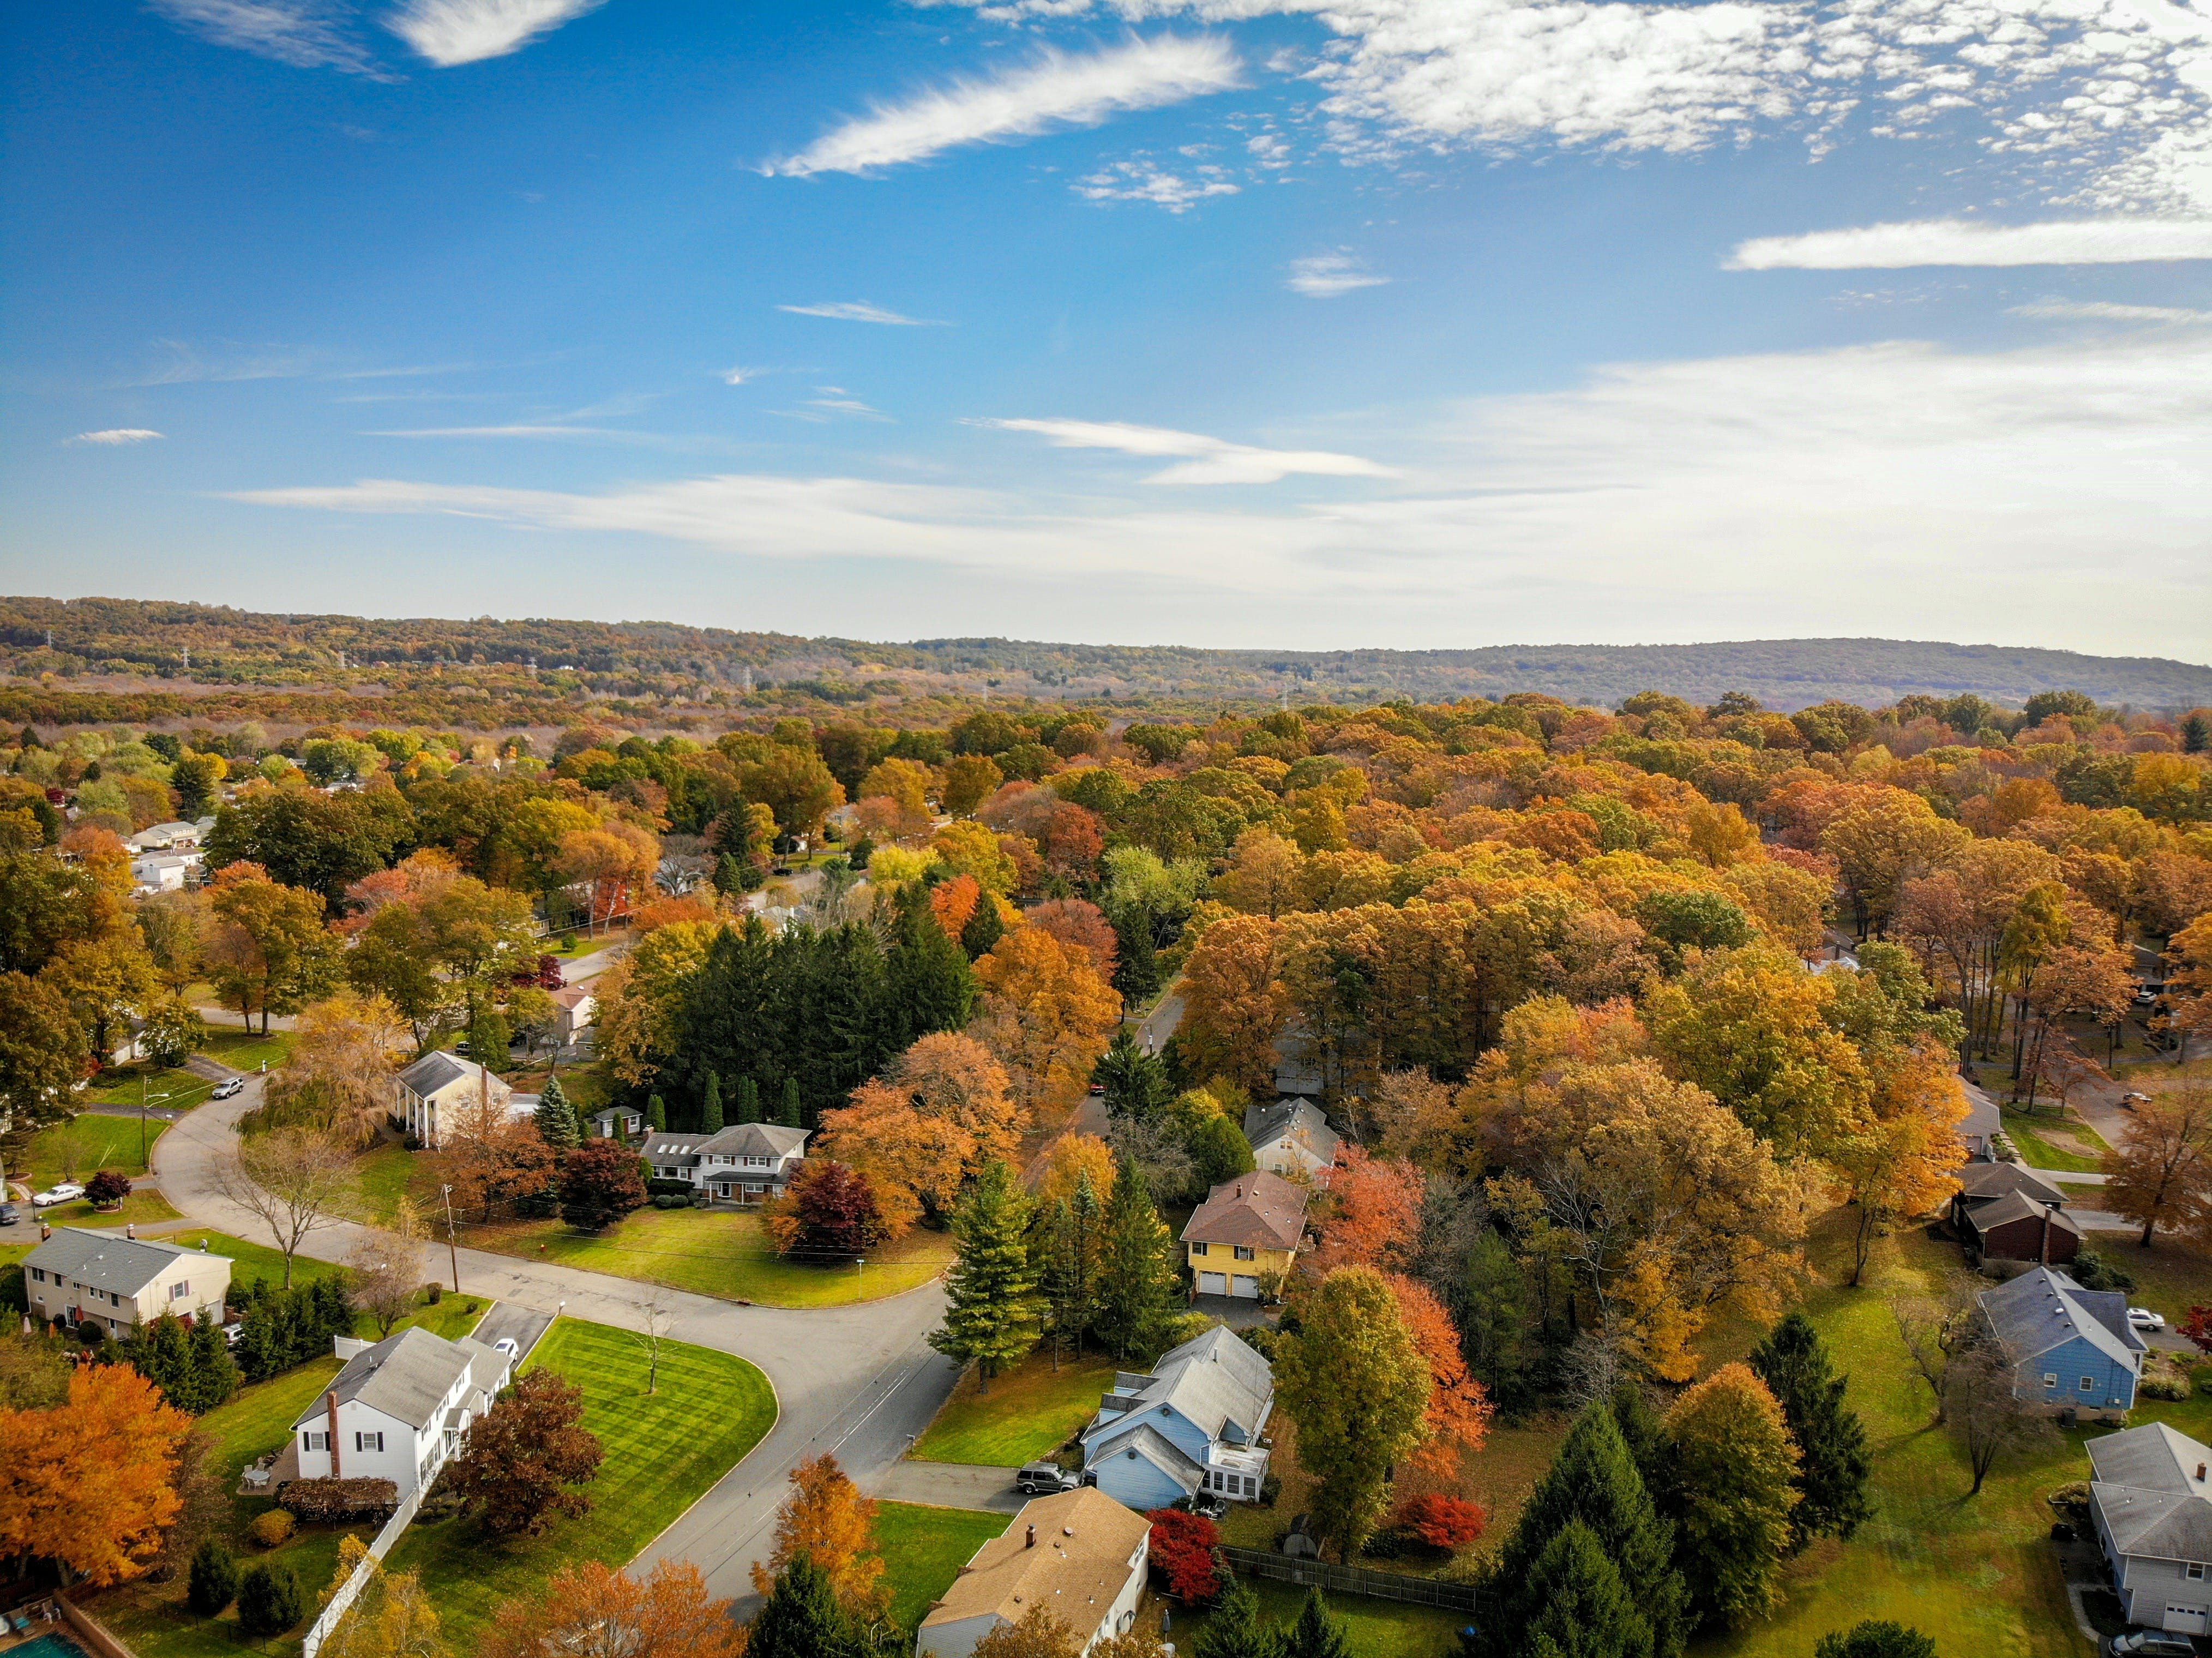 Aerial Photography of Houses Surrounded by Trees